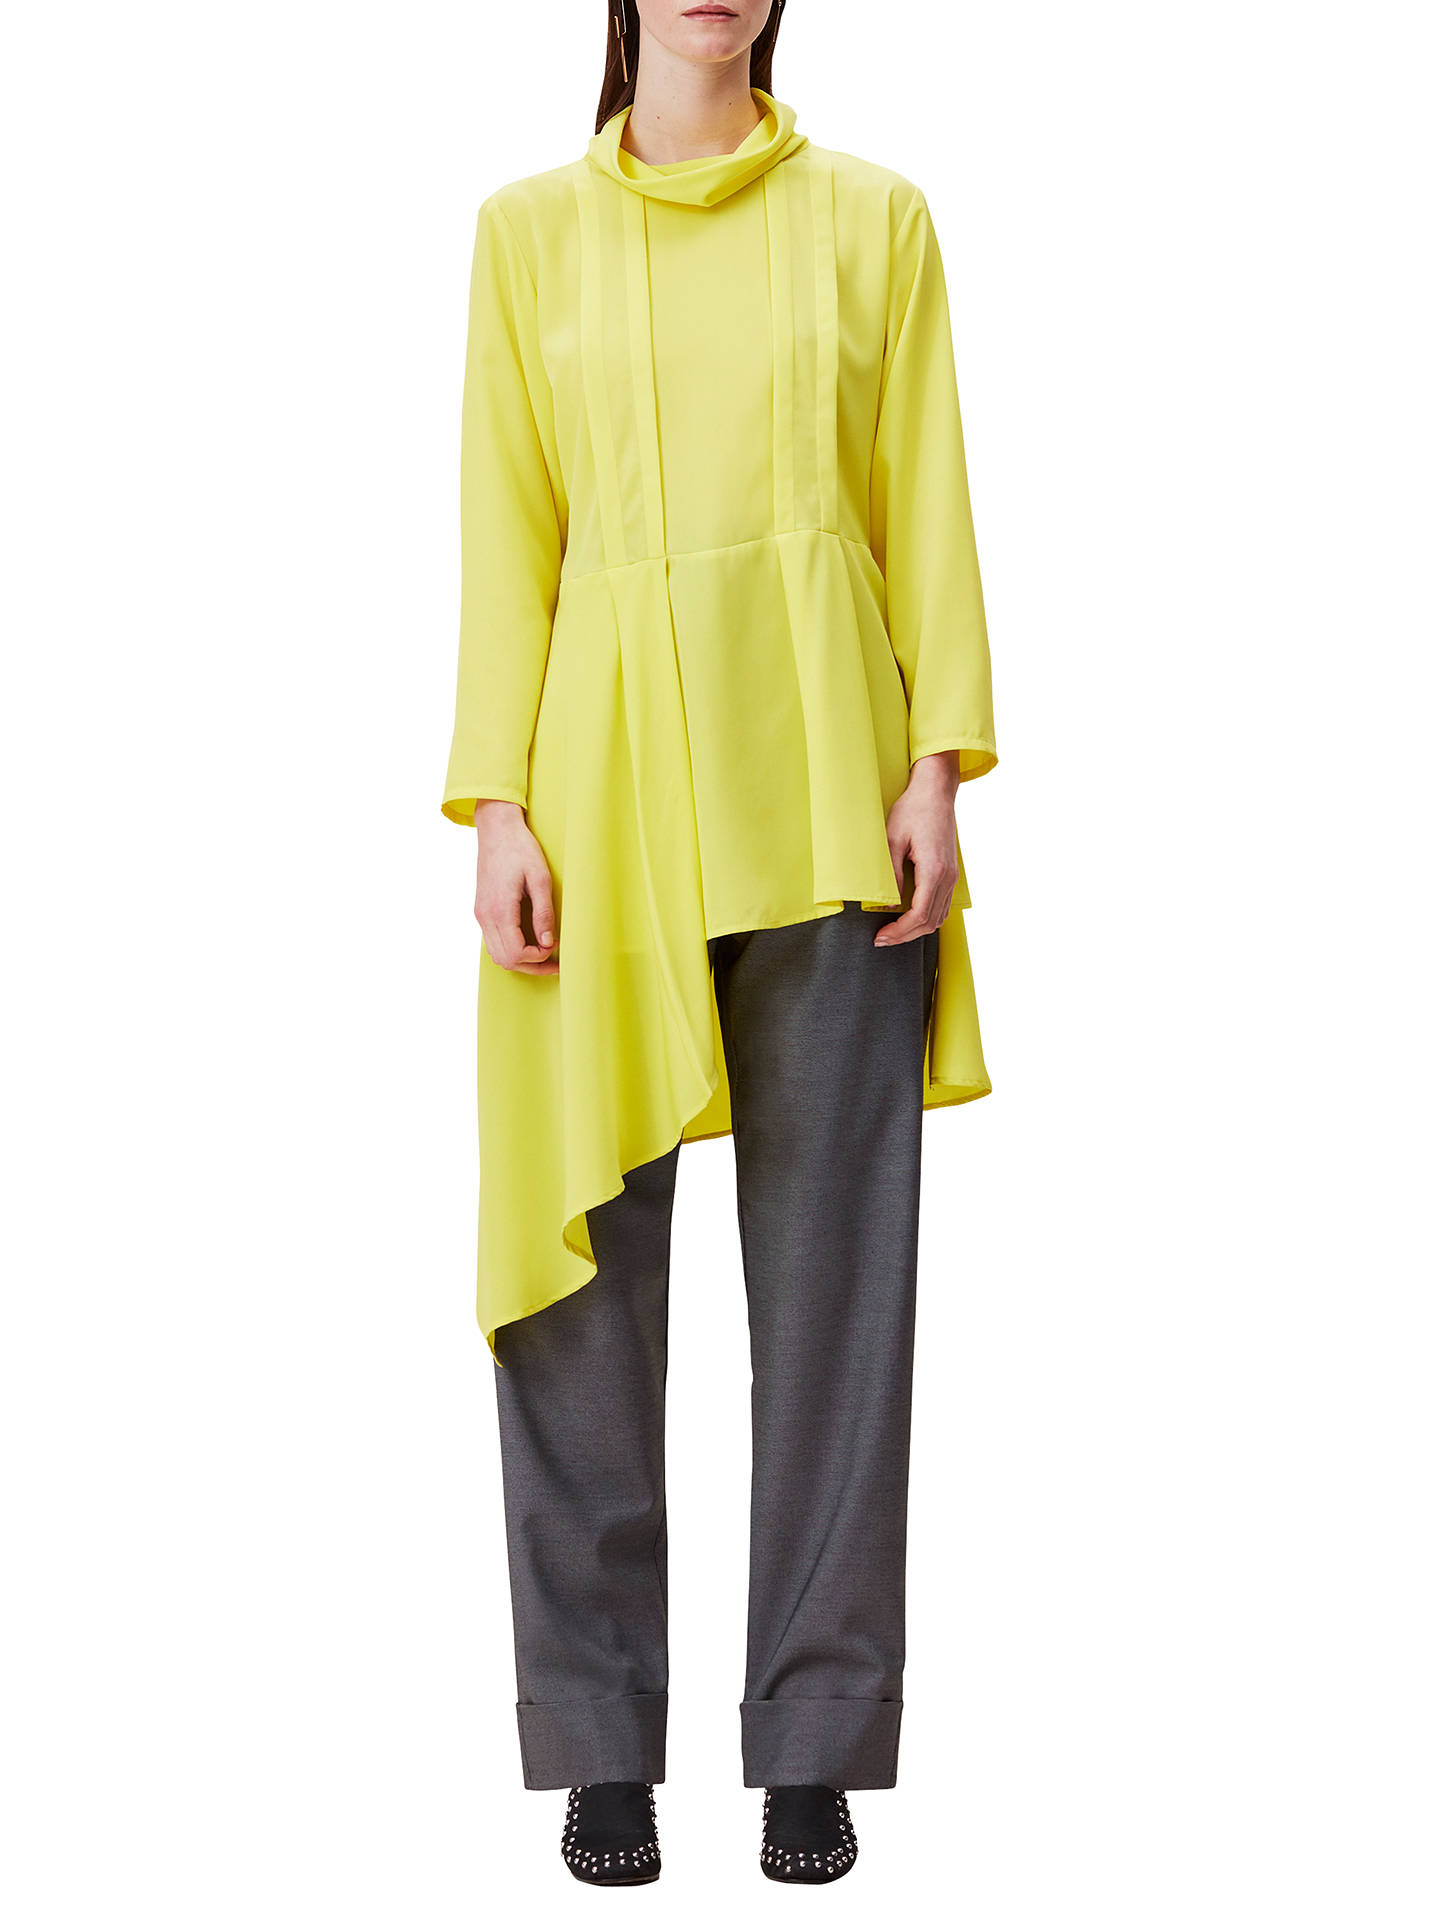 0f7b5d2cd66 Buy Finery Tasso Cowl Neck Tunic Dress, Yellow, 8 Online at johnlewis.com  ...